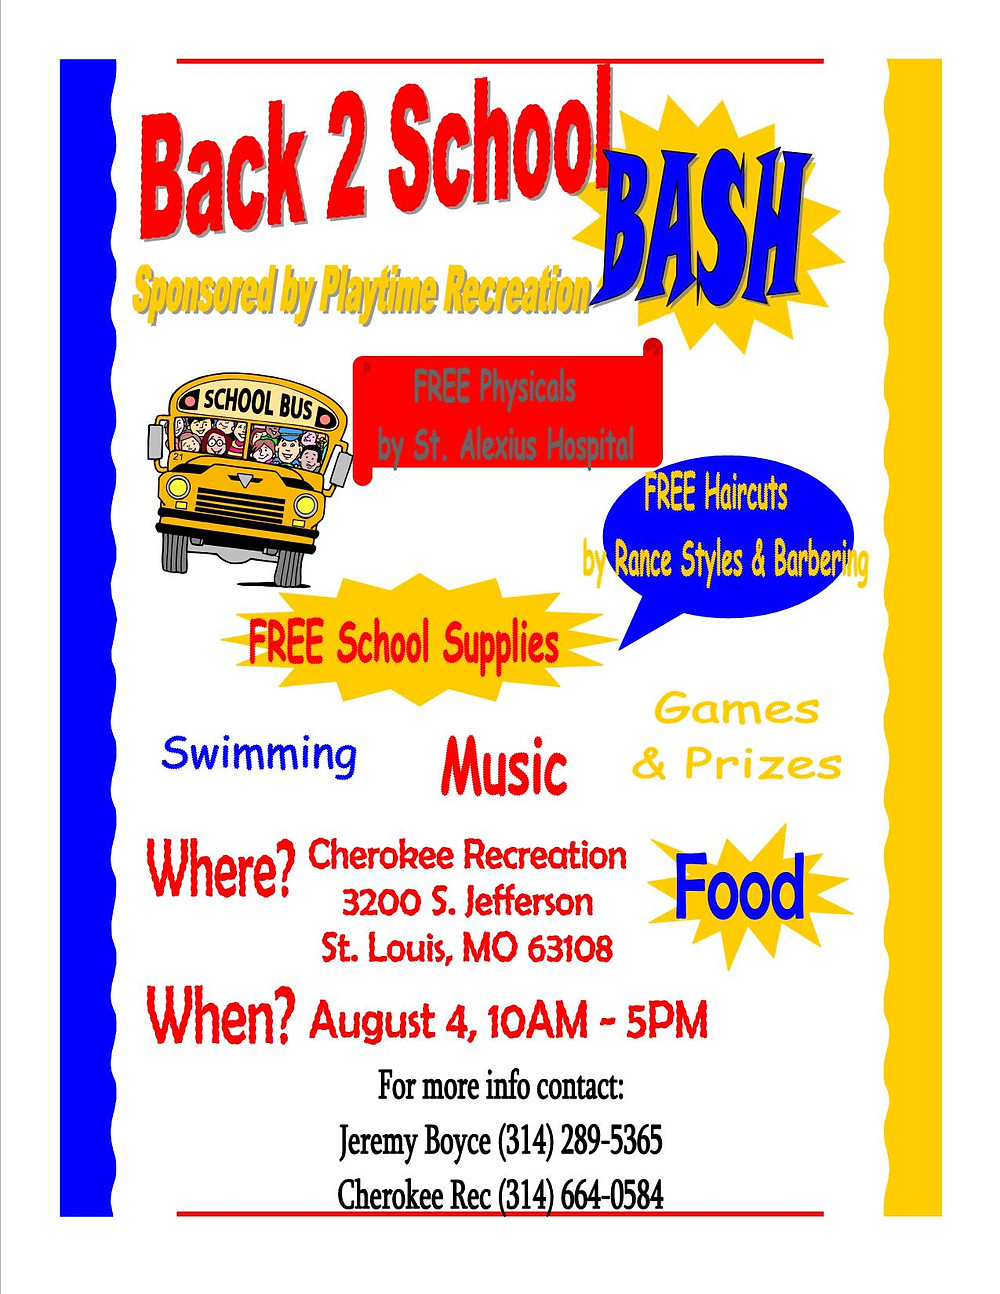 2014 Back to School Bash Flyer.jpg